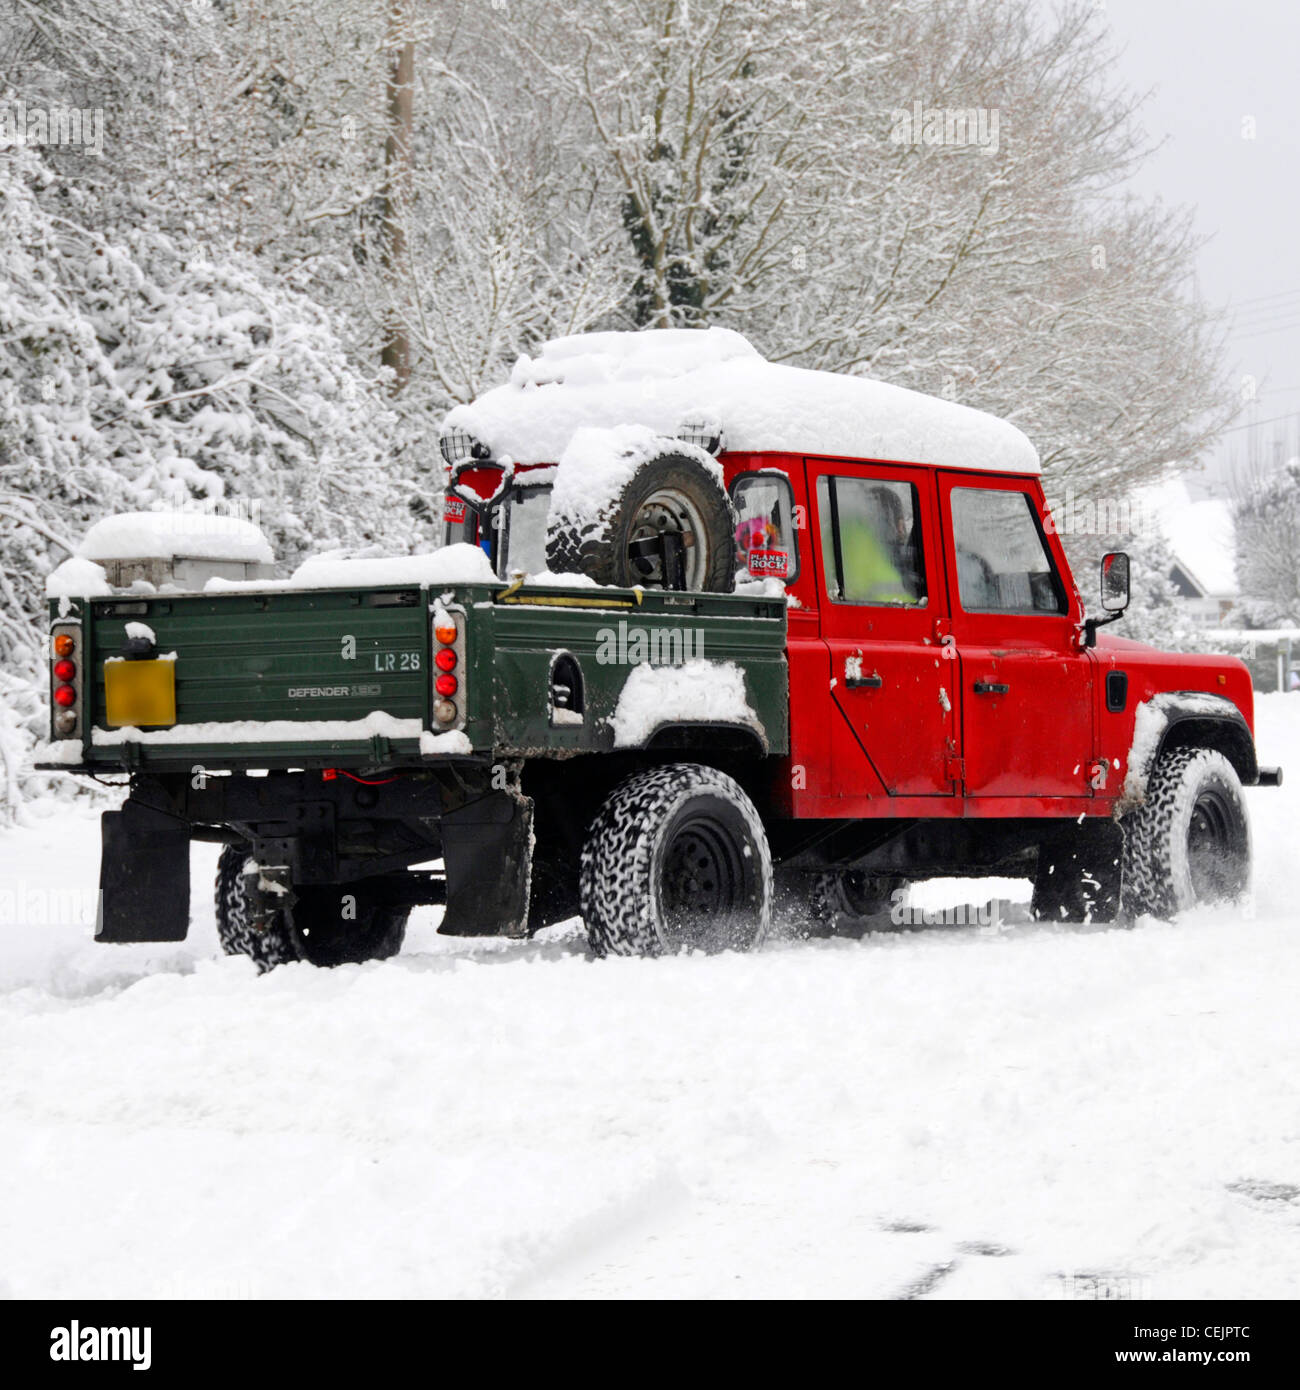 Snow scene Land Rover Defender 130 4x4 driving on narrow country lane road in winter snowfall cold weather Brentwood - Stock Image